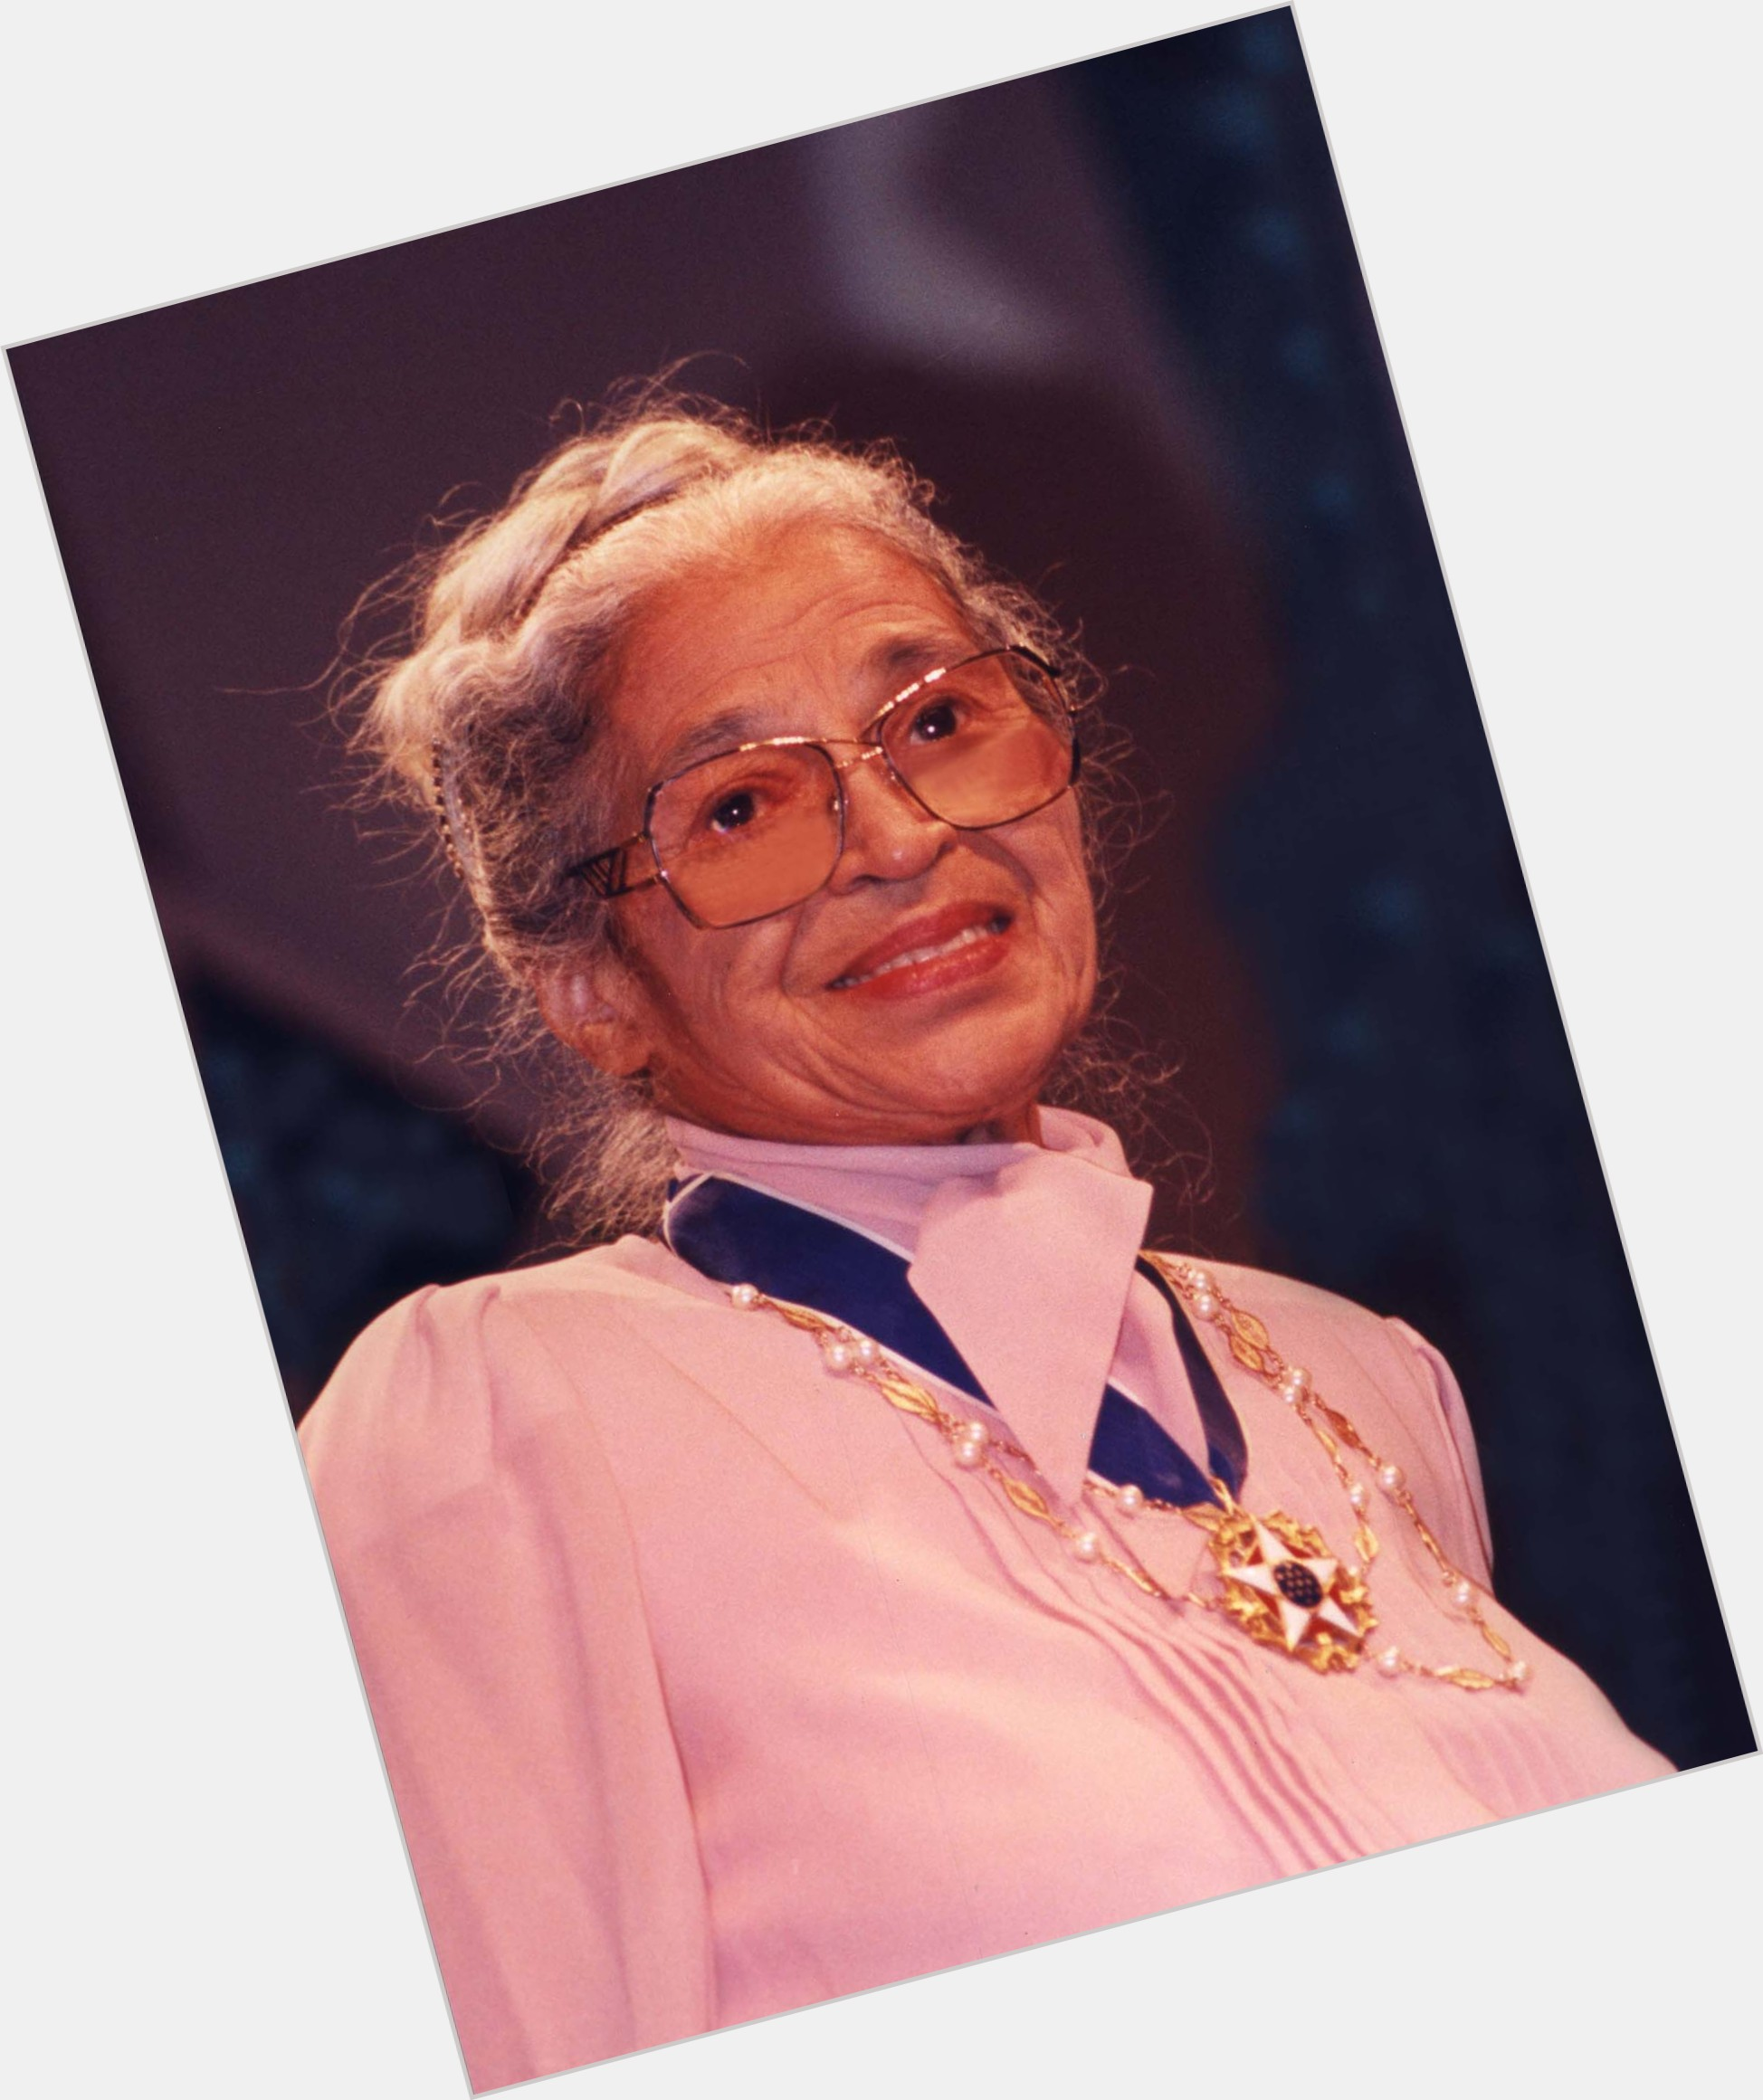 Rosa Parks exclusive hot pic 7.jpg